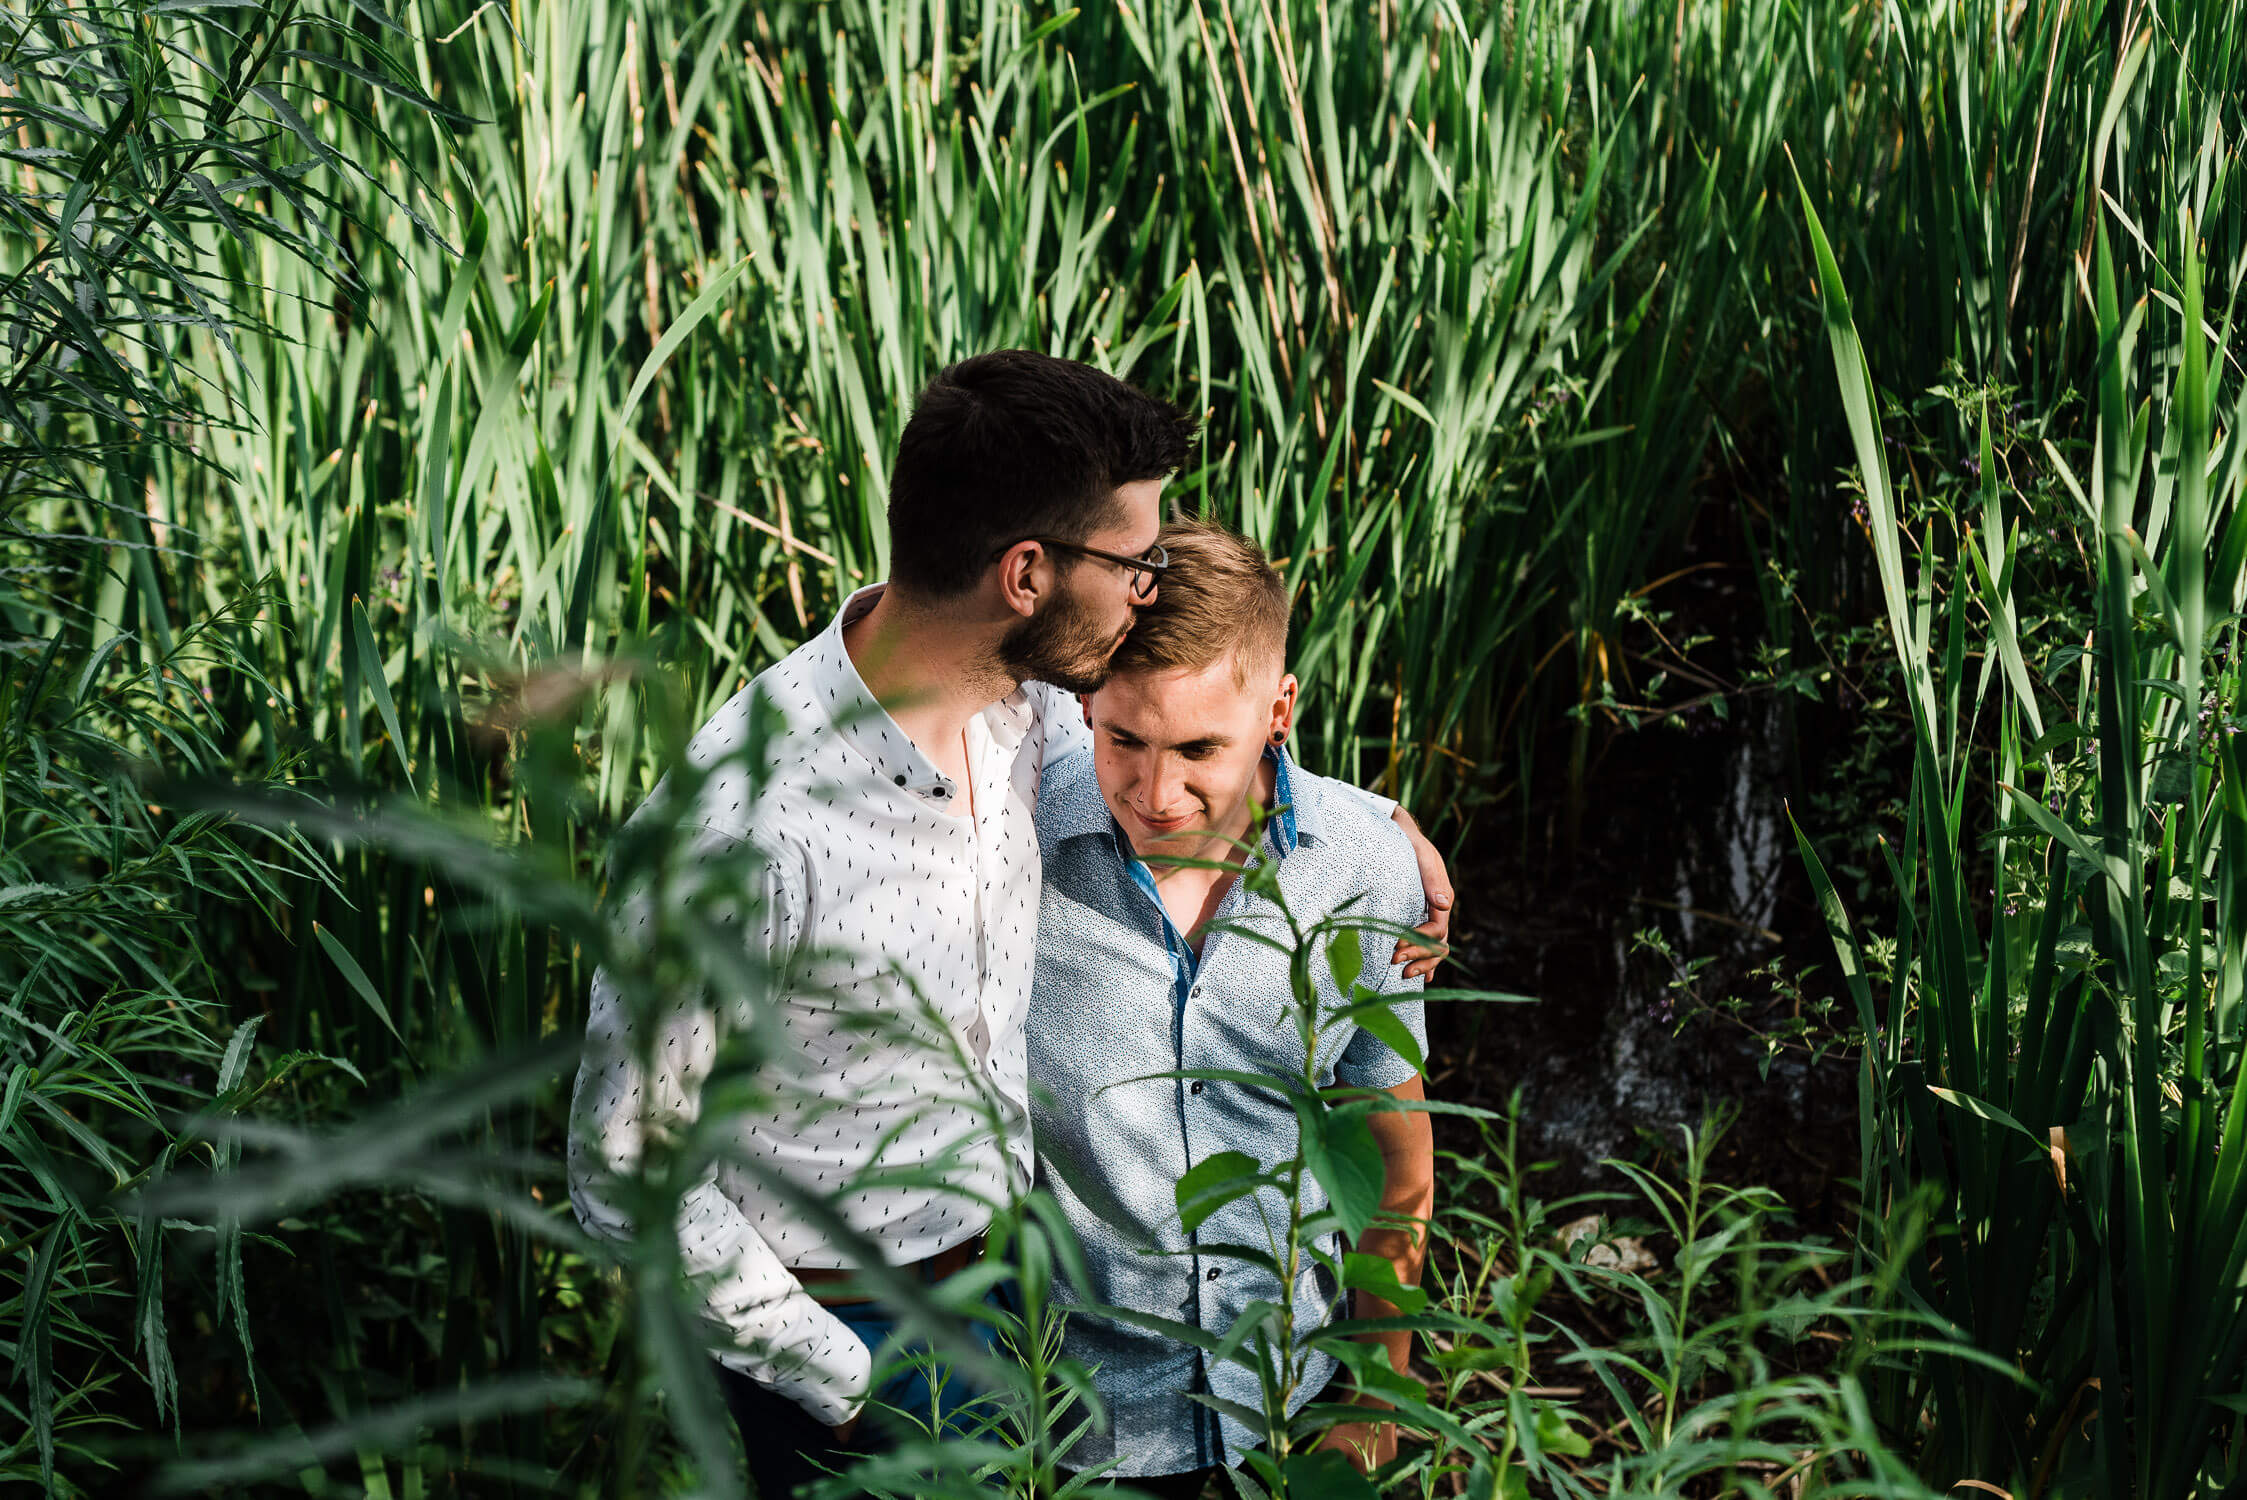 Two men embracing in tall grass near the lake